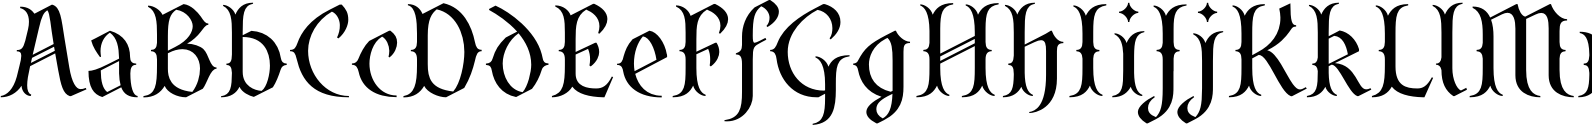 SteamCourt Regular Font